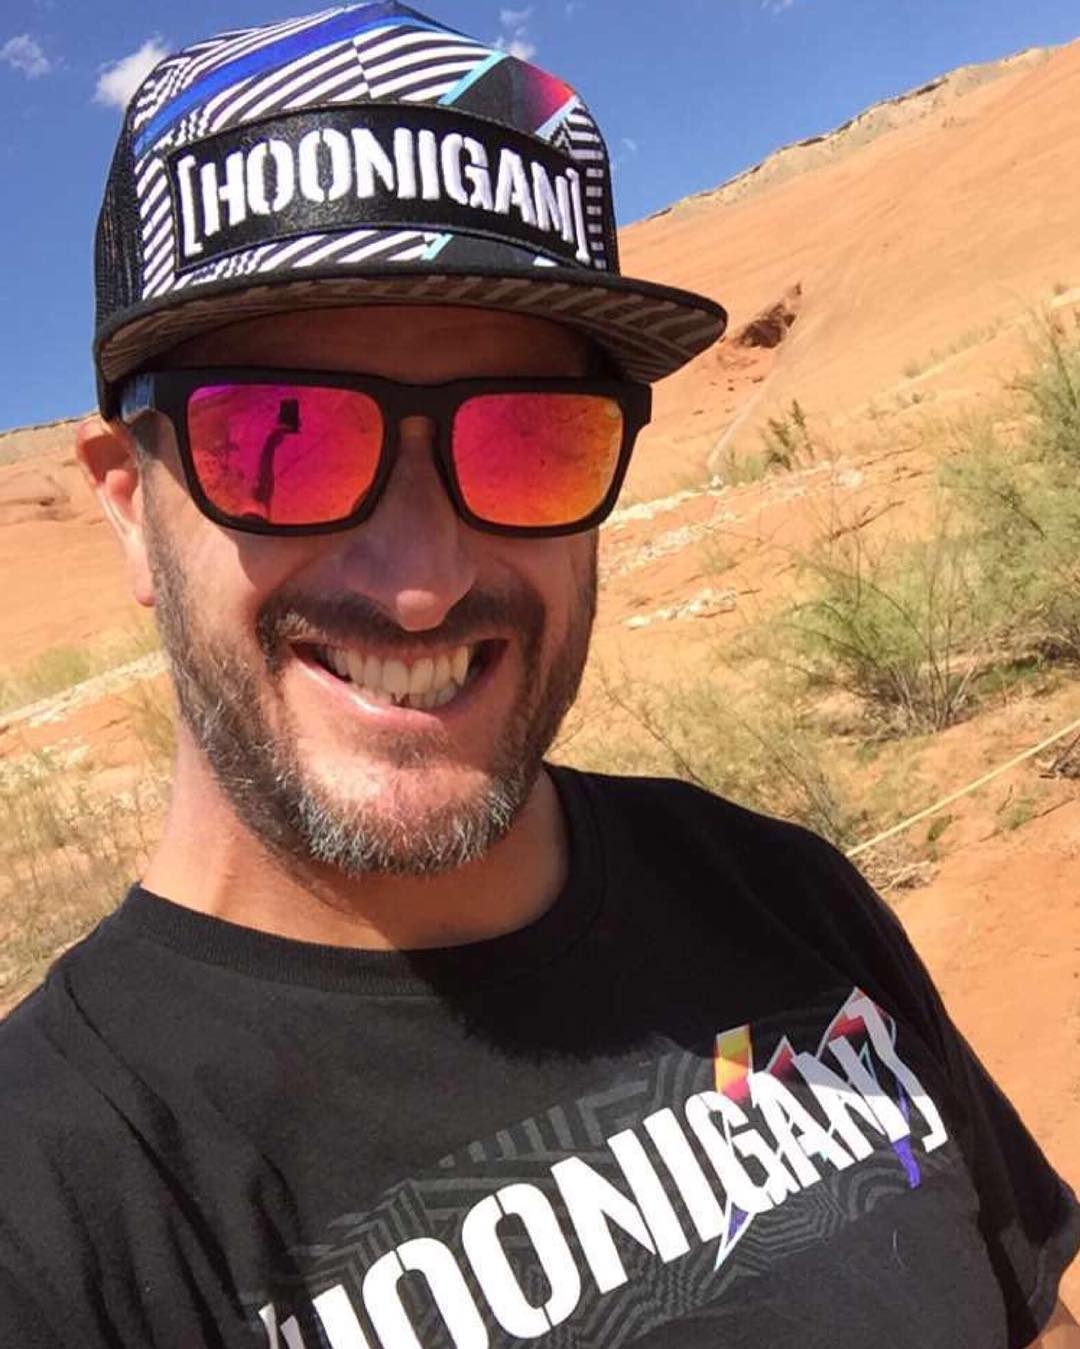 Totally normal to match your hat and t-shirt to your boat, right? Yep. #LakePowell #HooniganRacingbyFelipePantone @TheHoonigans